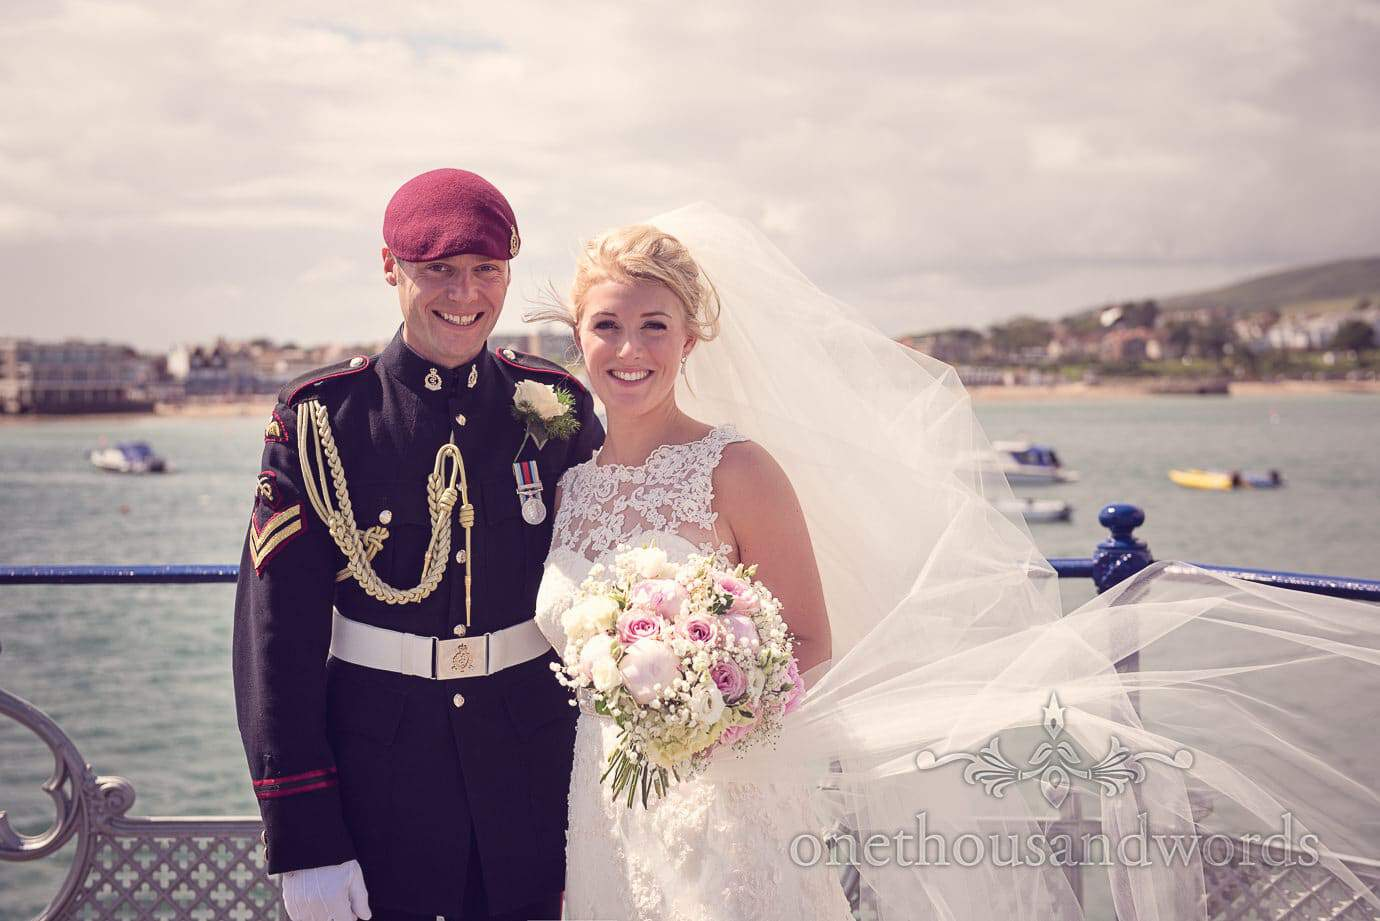 Bride and Groom in military uniform wedding photograph on Swanage pier